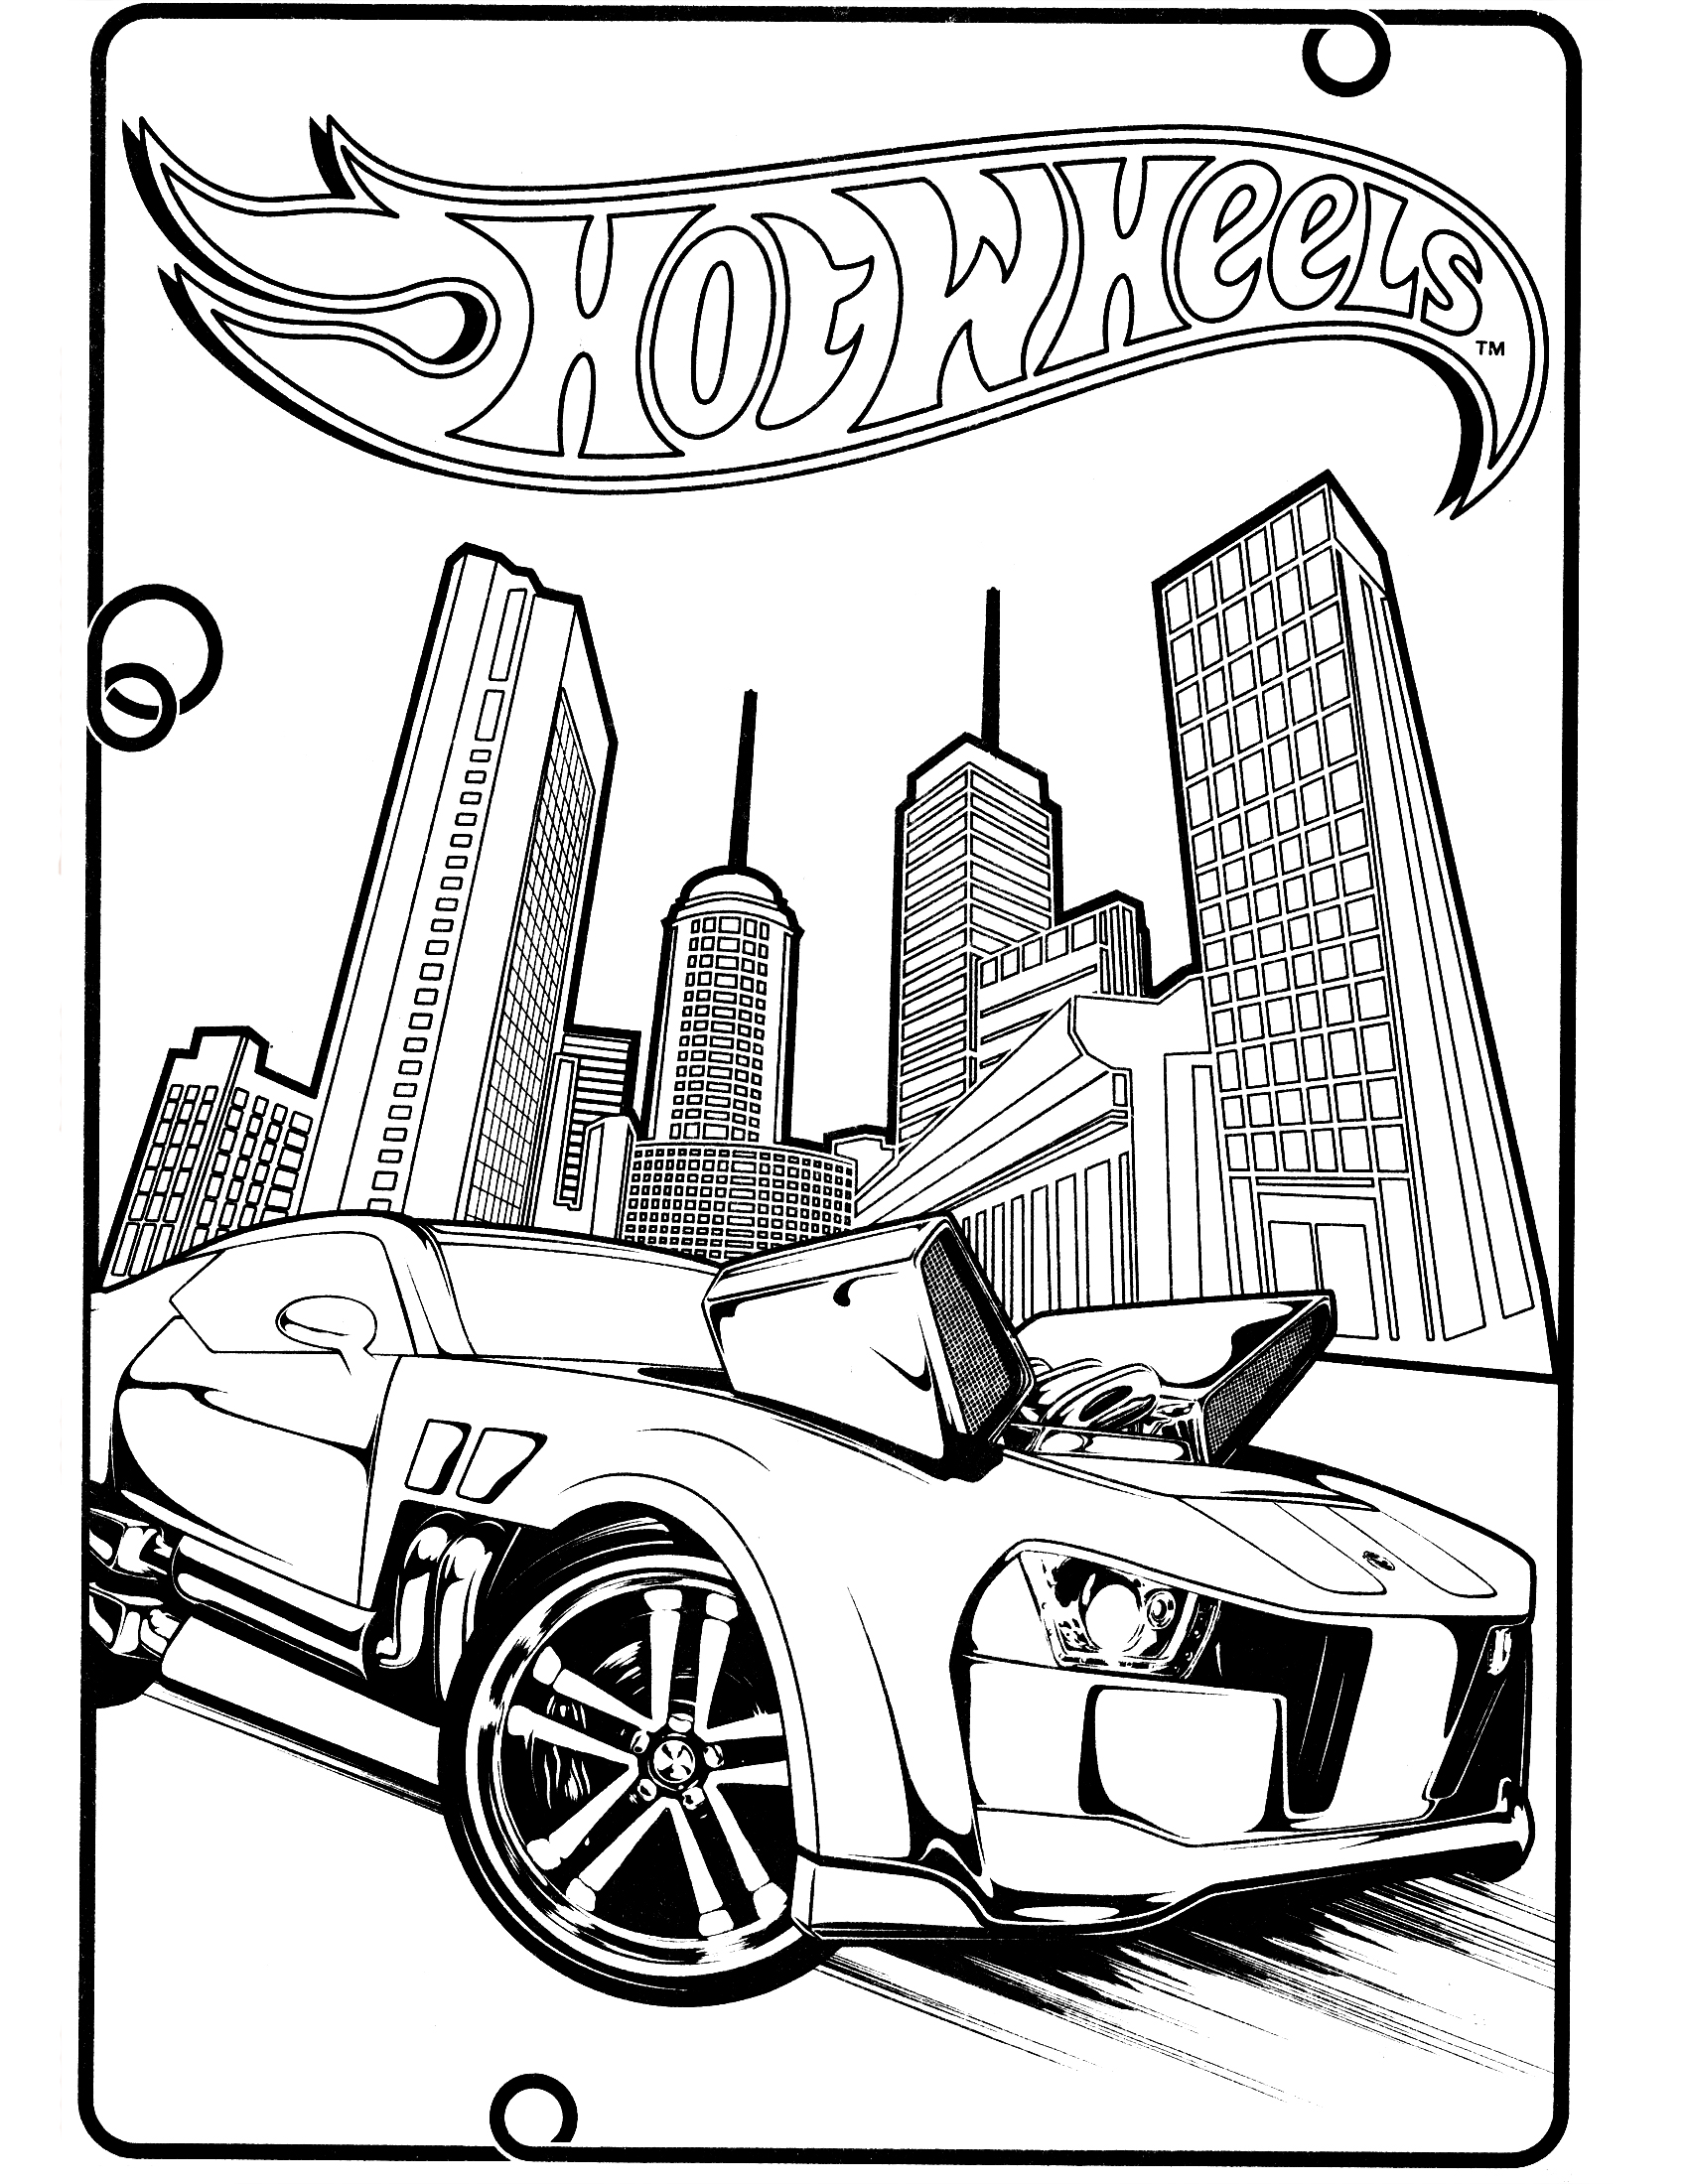 hot wheels images to print hot wheels 50 coloringcolorcom images print to wheels hot